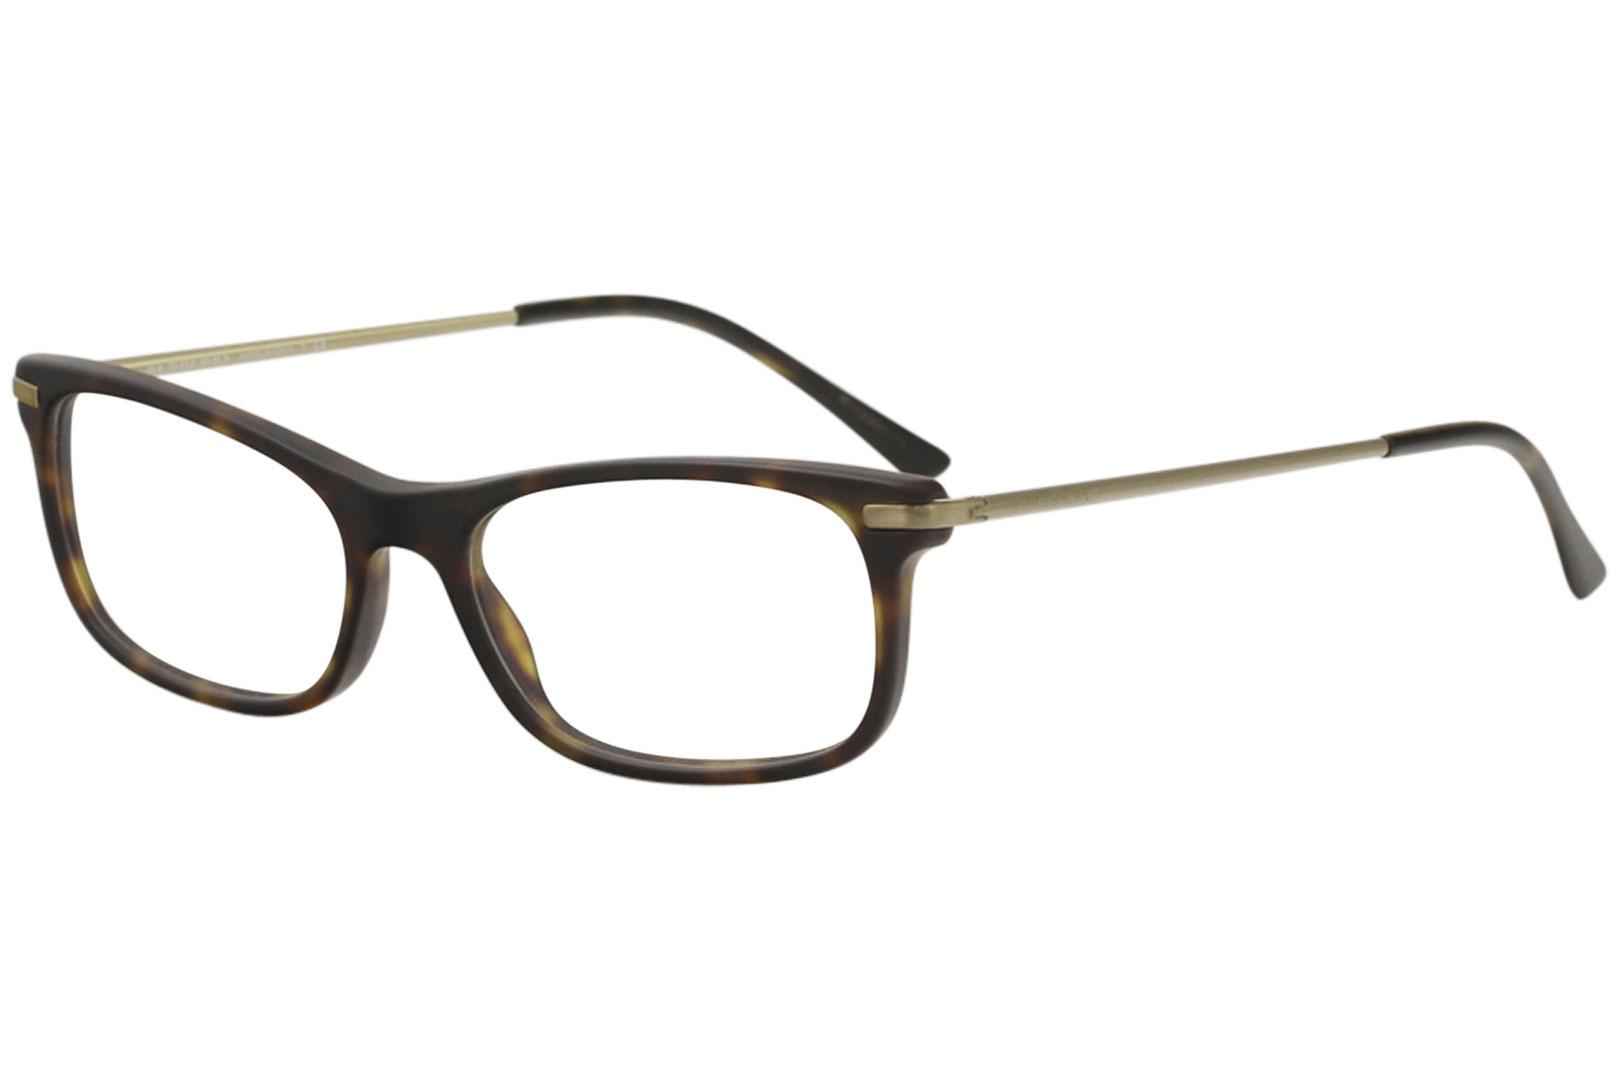 fde7f2657e05 Burberry Men's Eyeglasses BE2195 BE/2195 Full Rim Optical Frame